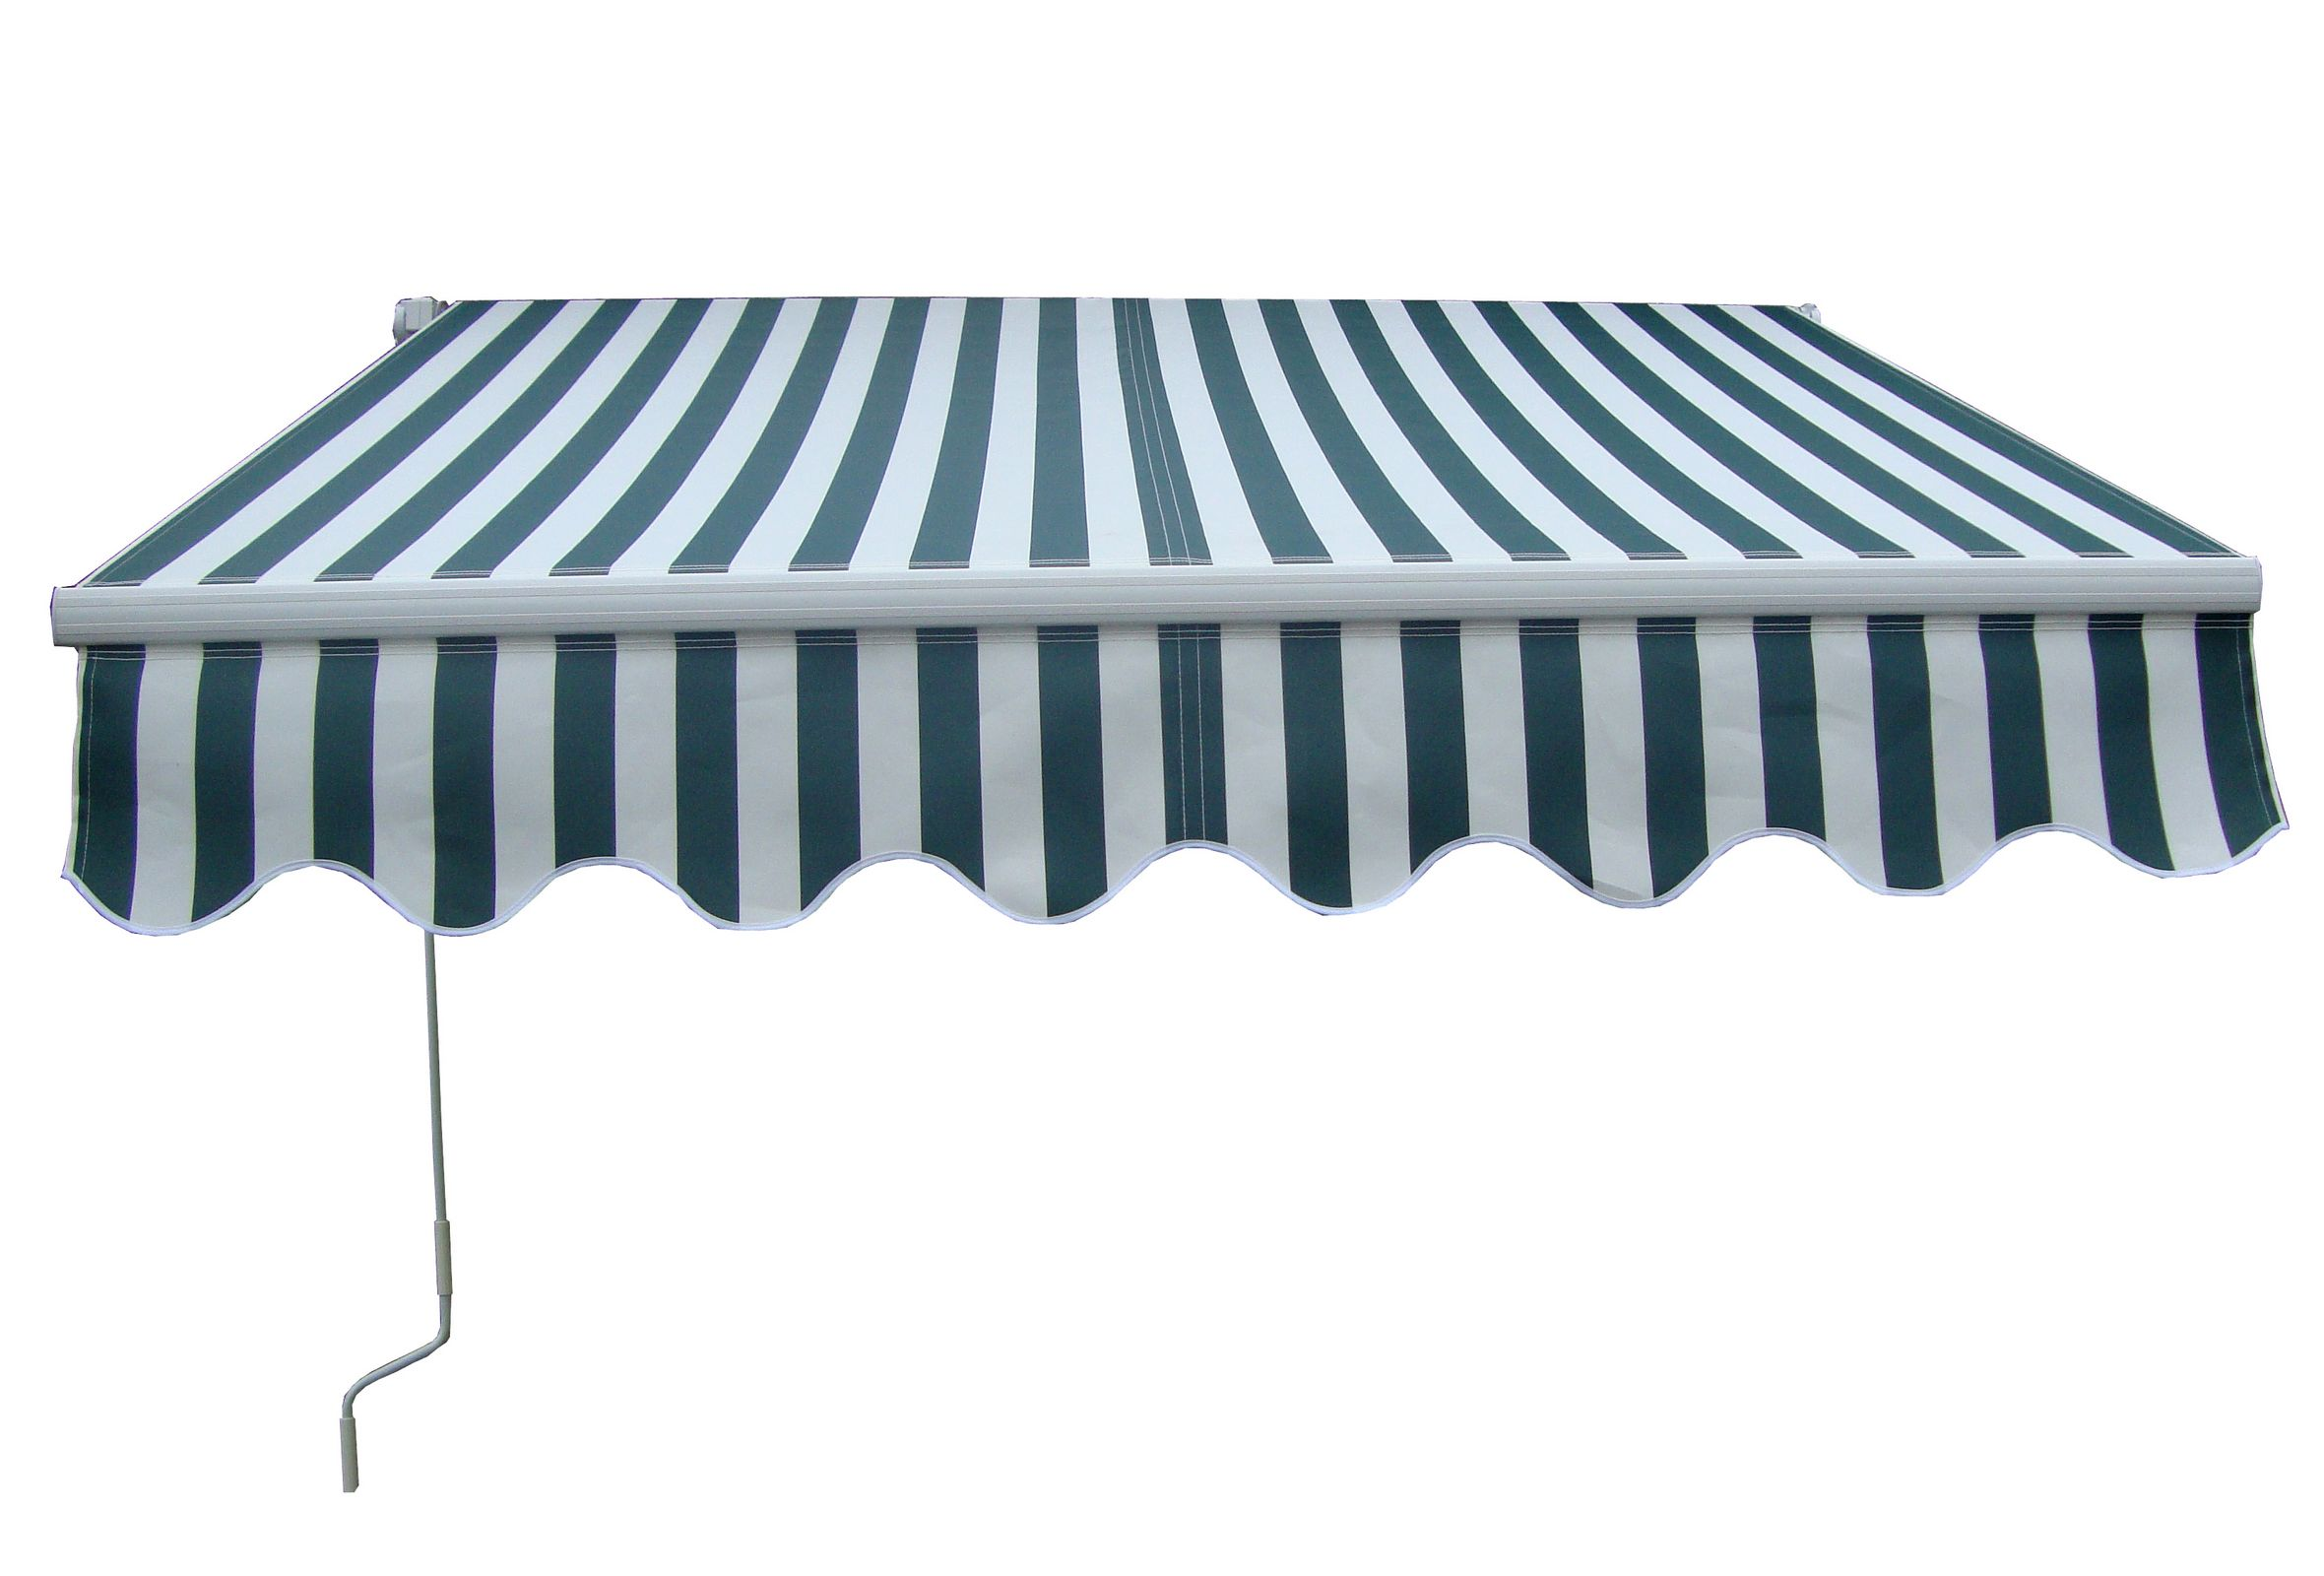 4mx3m manuel auvent r tractable garden patio canopy shade sun shelter grn blanc. Black Bedroom Furniture Sets. Home Design Ideas